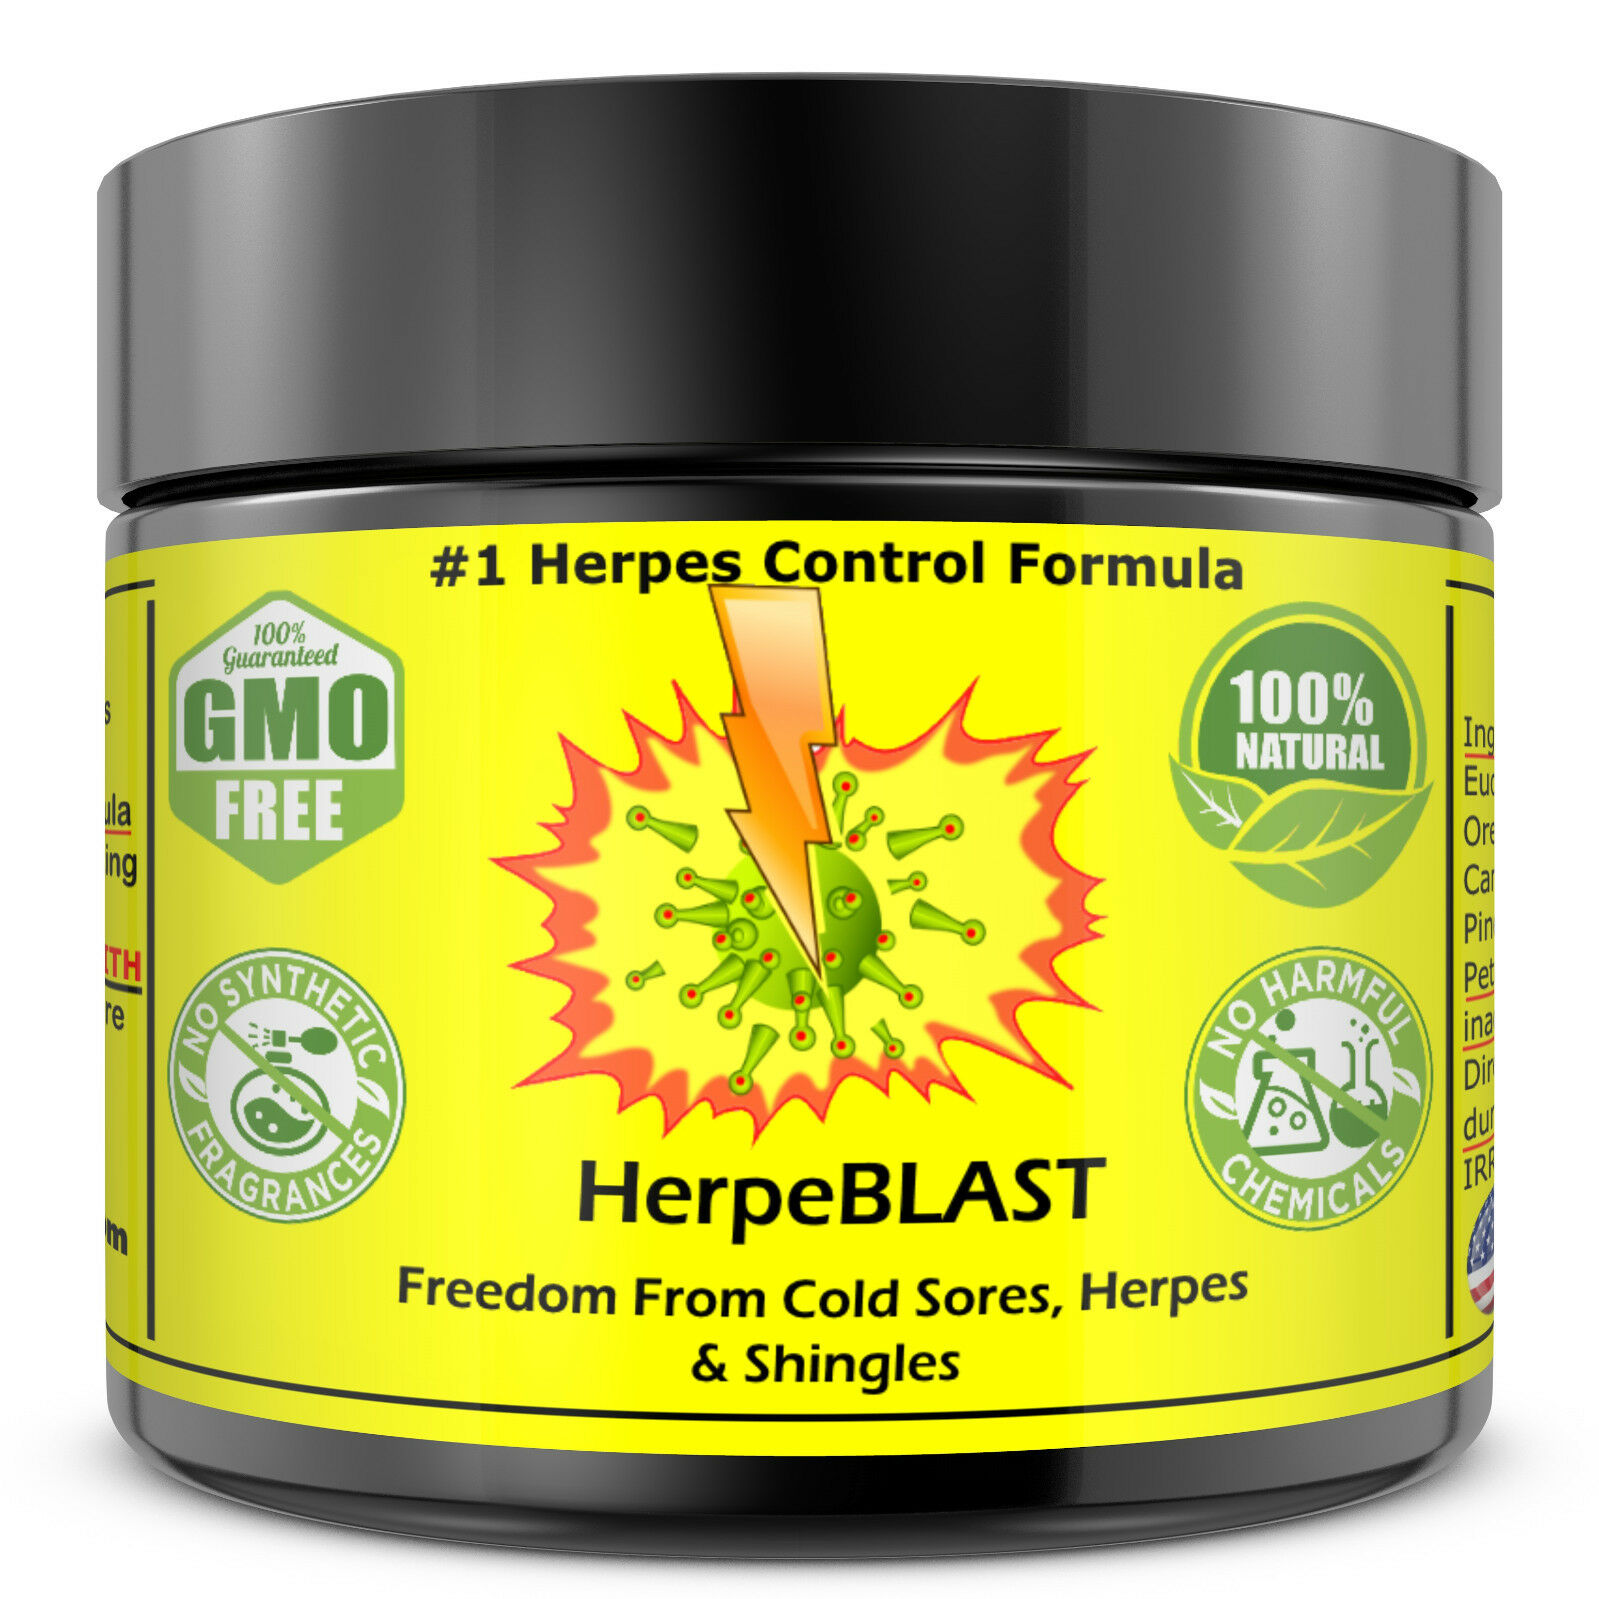 Herpes Treatment Cream Lips Genital HSV1 HSV2 HerpeBLAST SUPER BEST Suppression